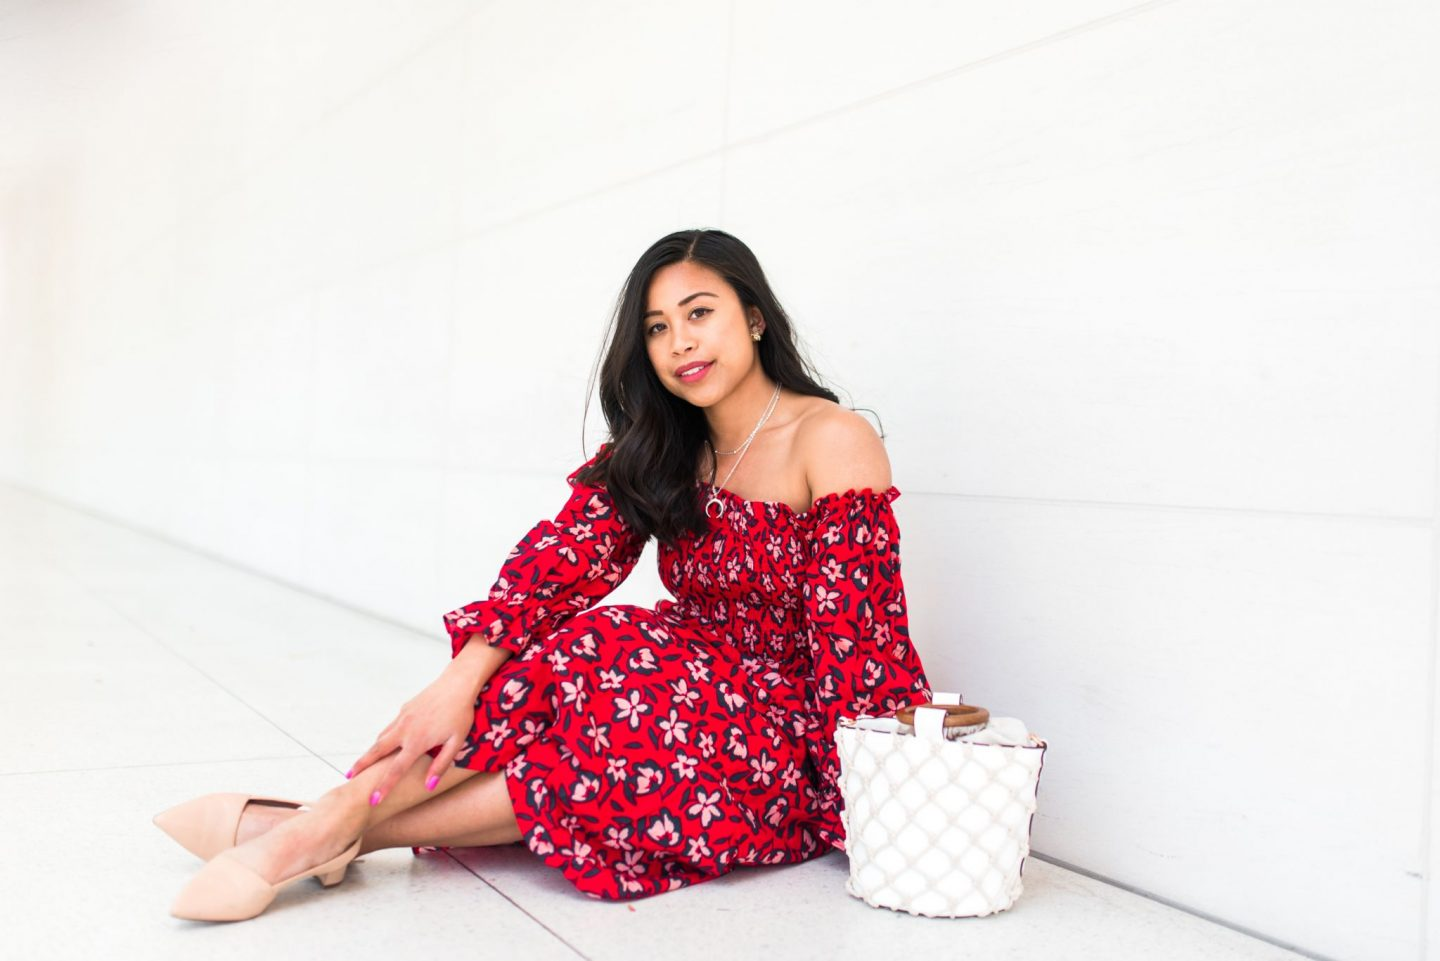 sitting down - red floral dress - spring outfit ideas